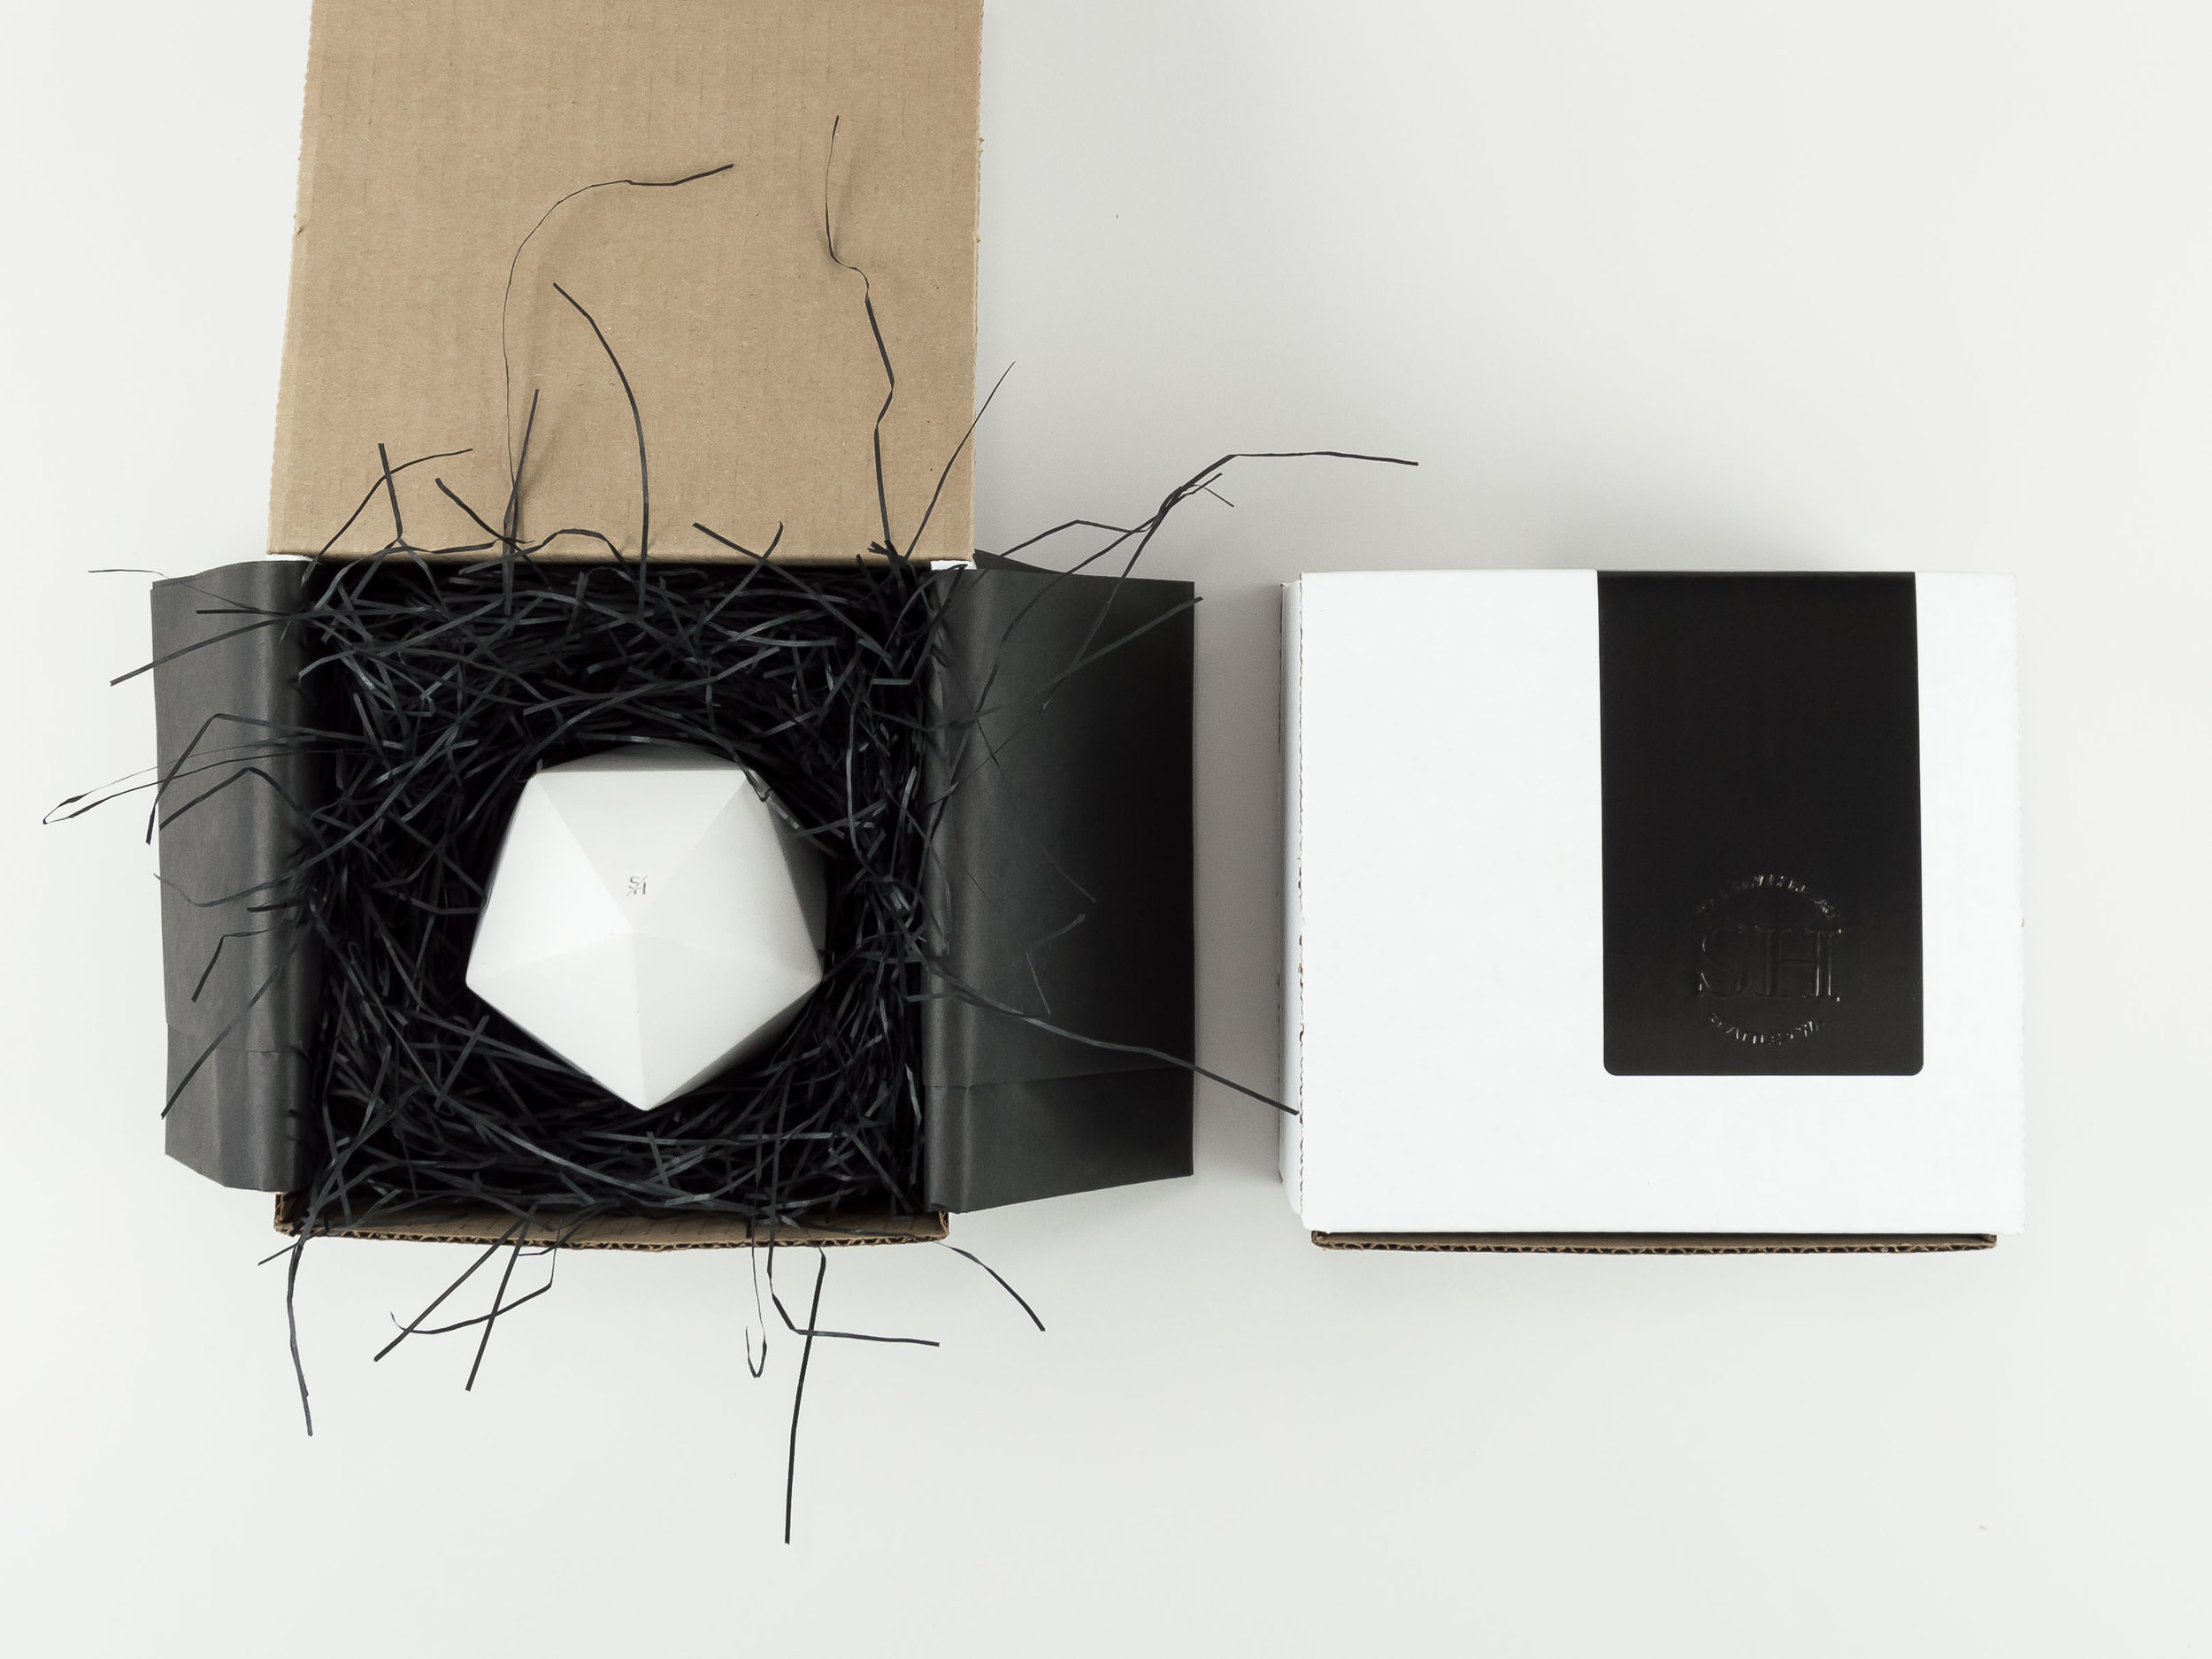 Packaging and Gift Wrapping for a Concrete Vessel from The Savvy HEart